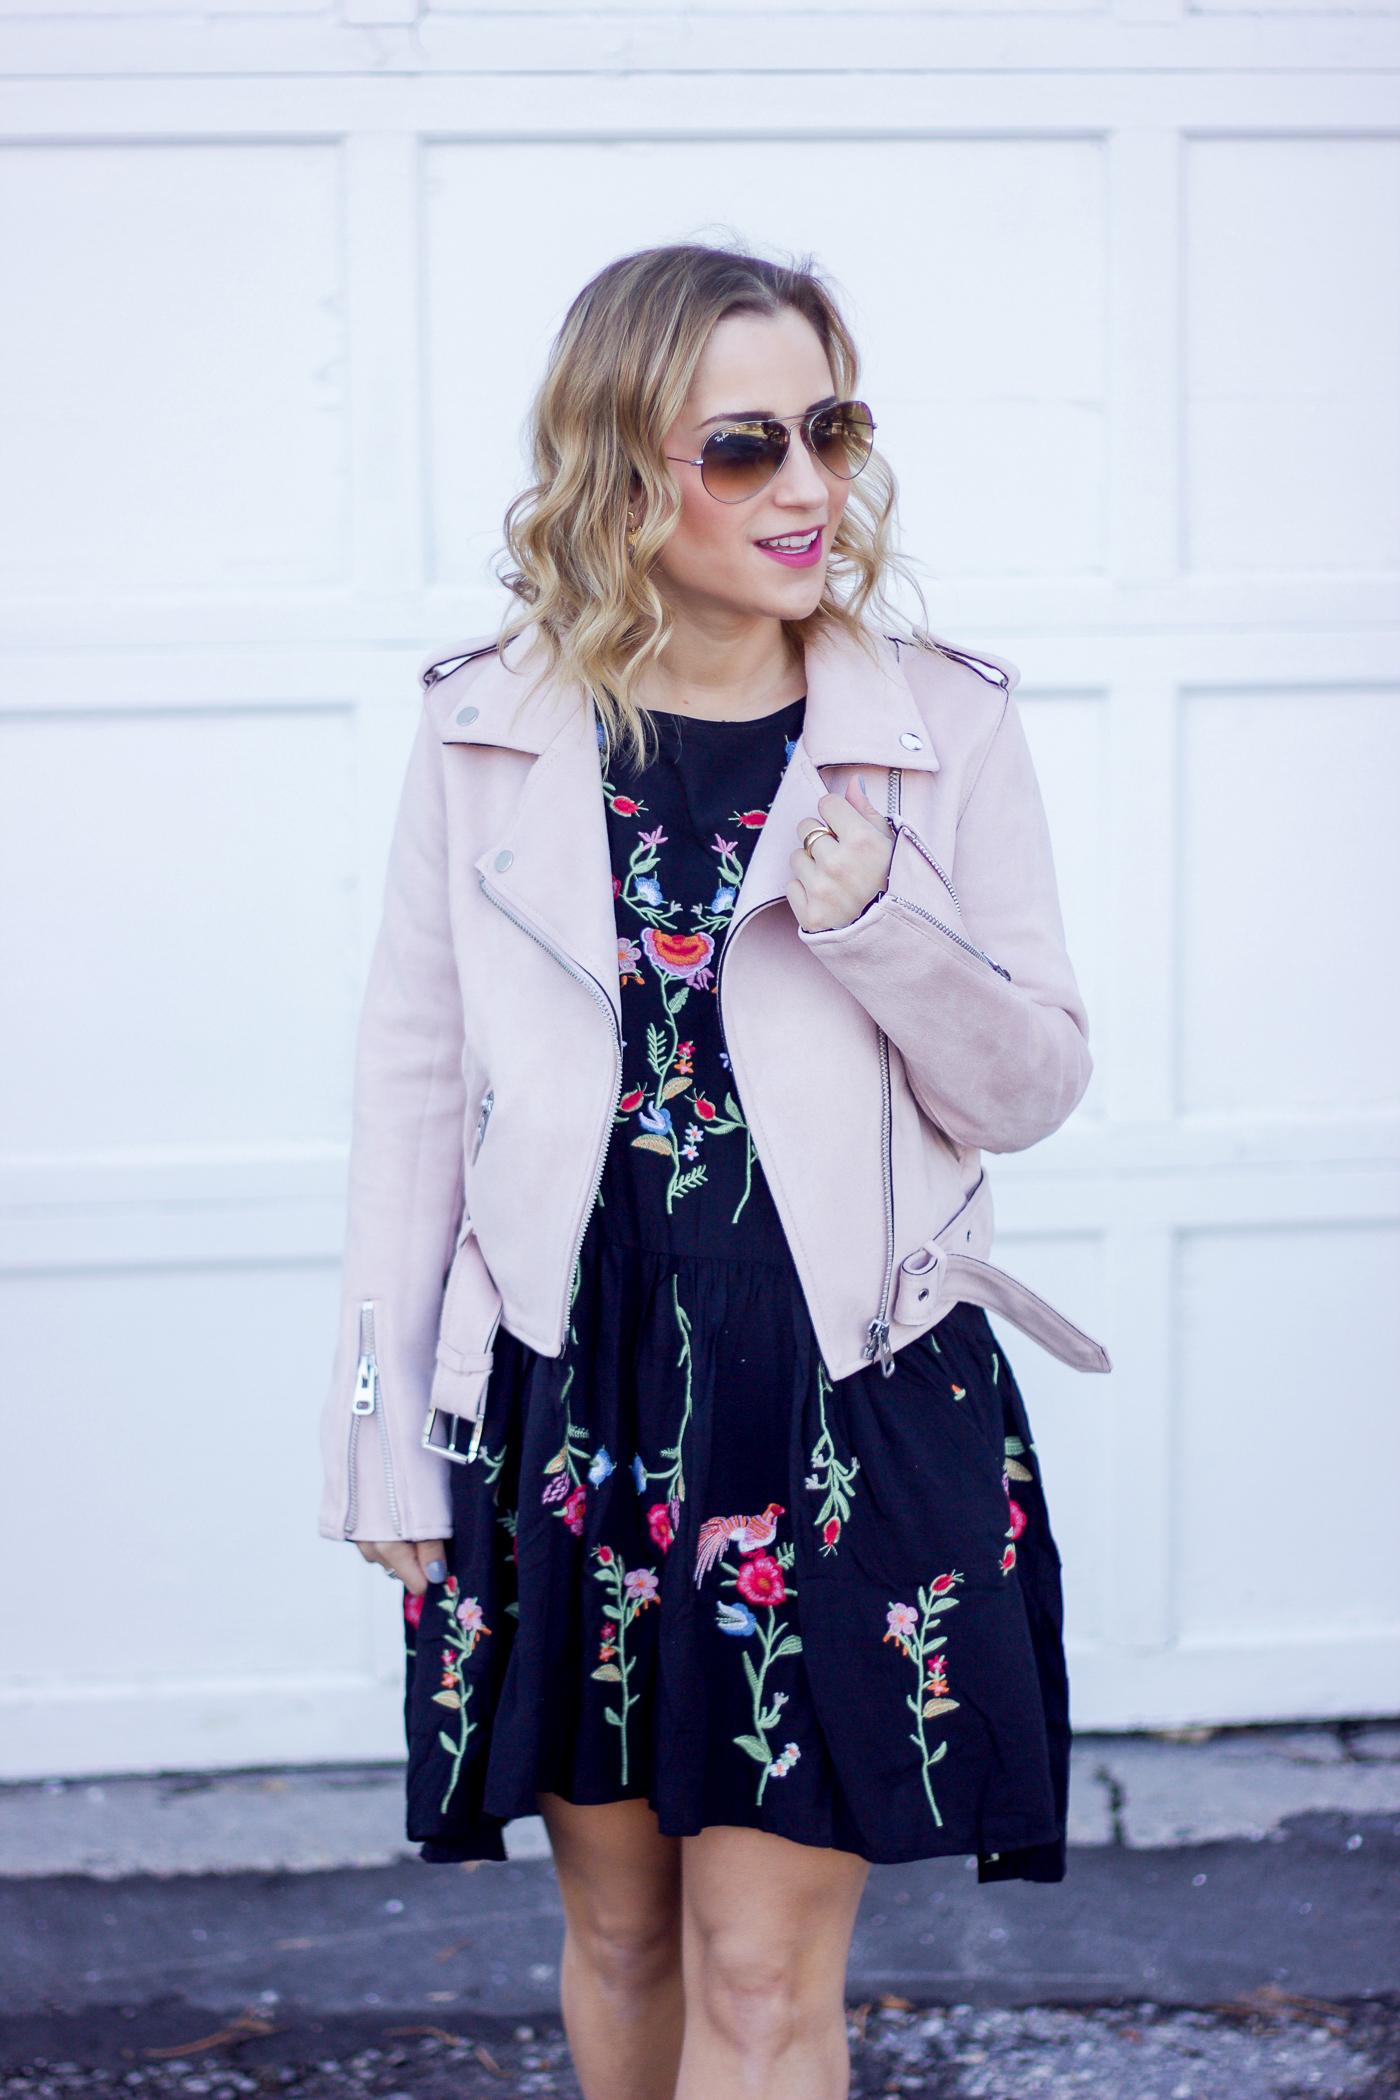 Toronto lifestyle and fashion blogger, Jackie of Something About That is wearing a pink moto jacket from Zara with an embroidered dress from Chicwish